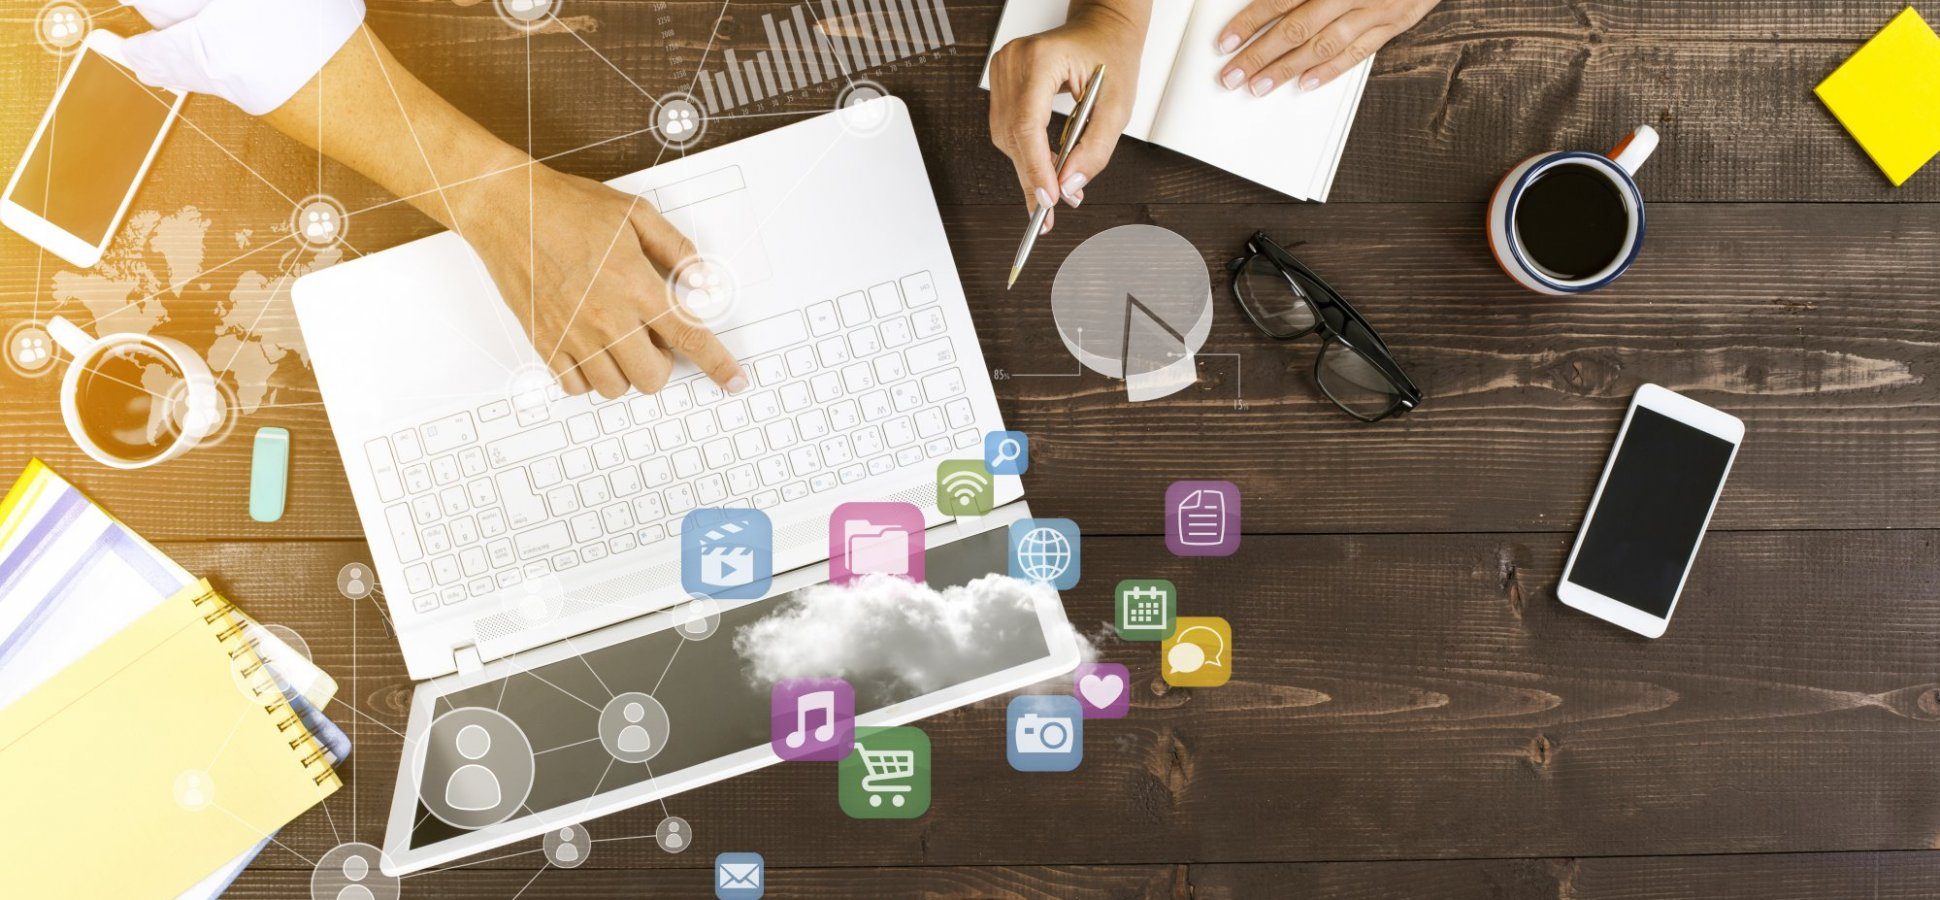 7 Free Marketing Tools That Can Make You More Successful